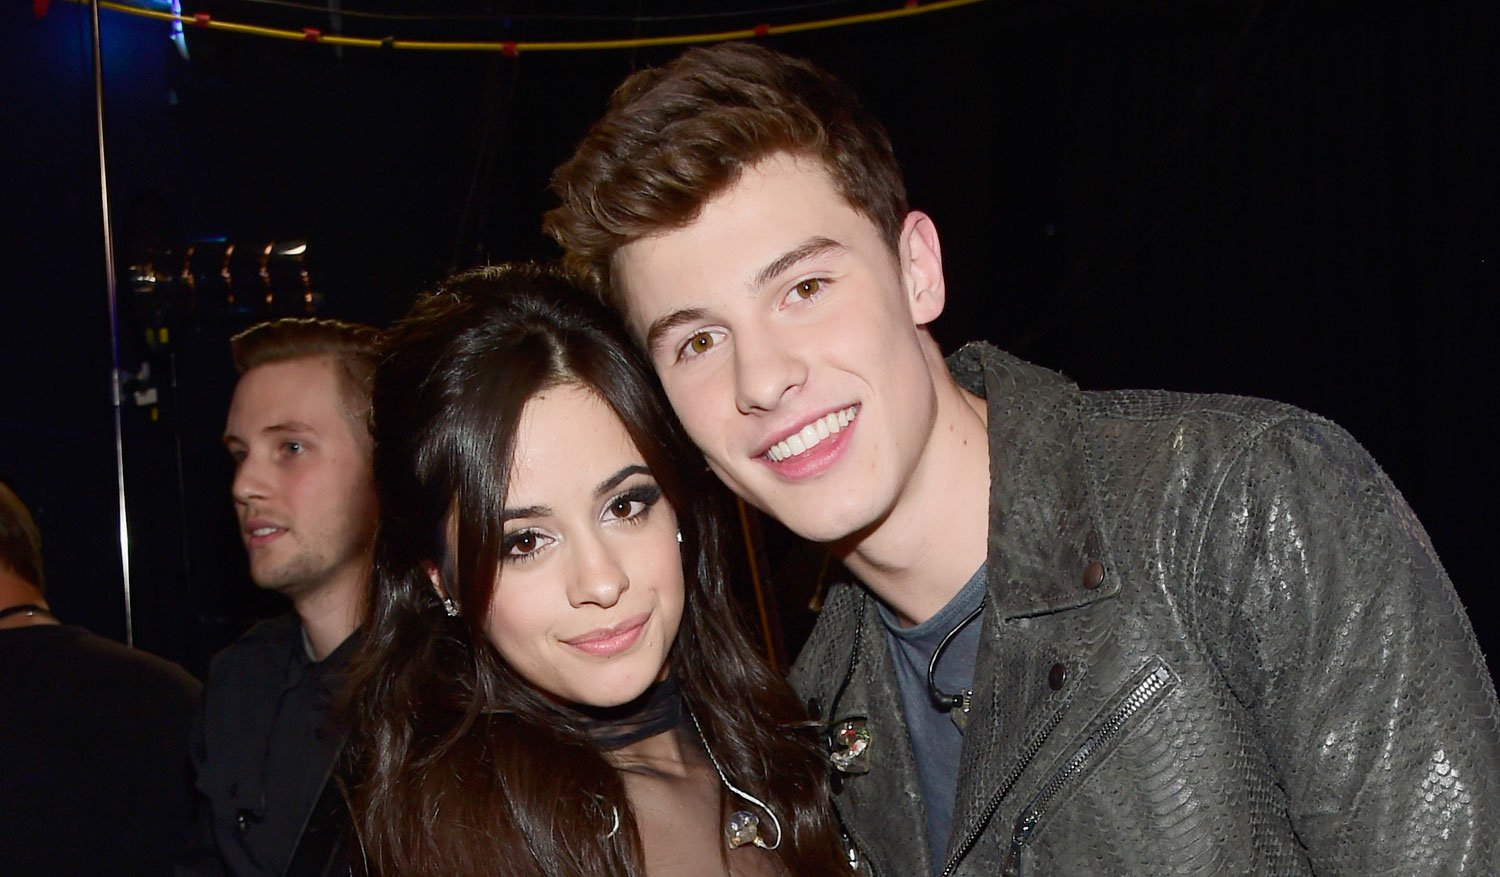 Shawn Mendes Does Camila Cabello's Hair In New Instagram Photo